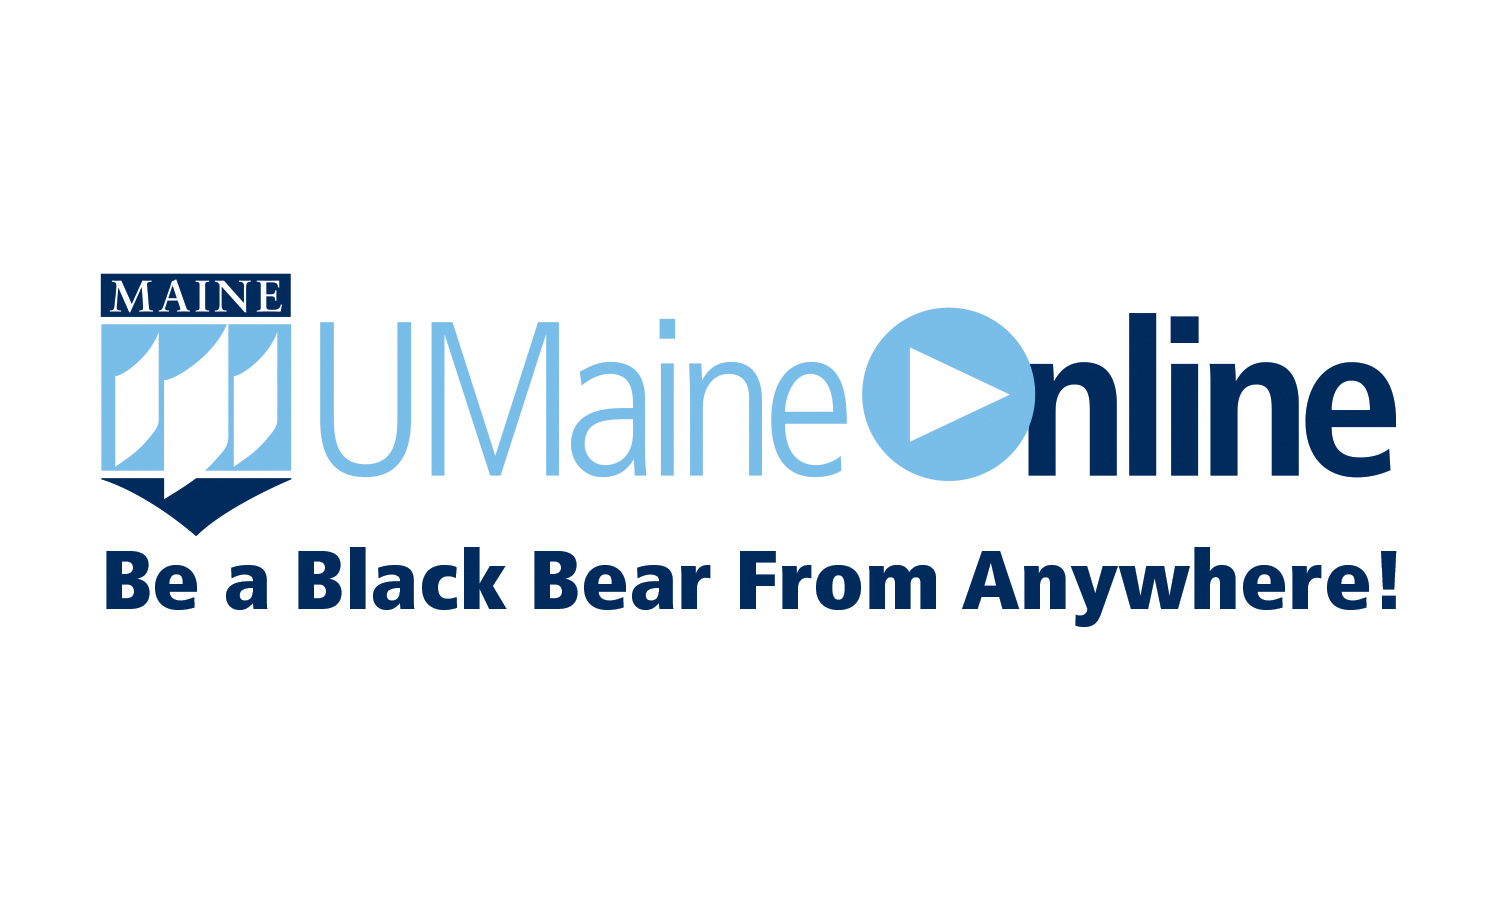 UMaineOnline with tagline